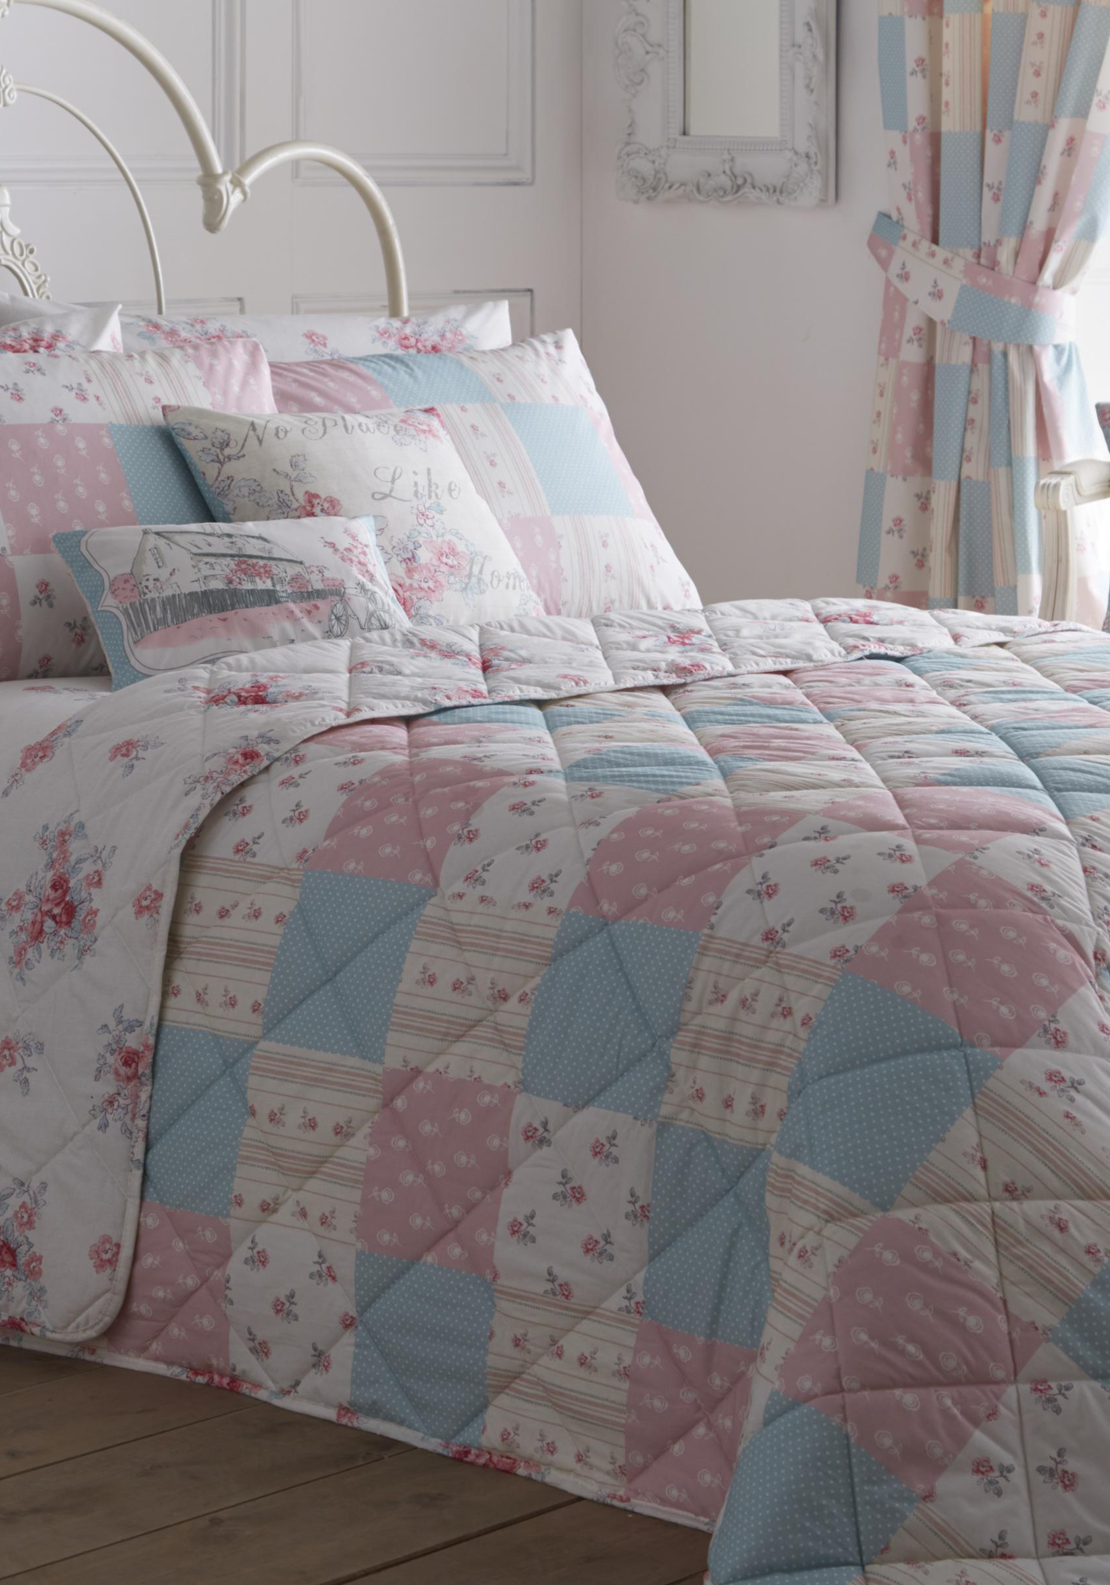 Dreams & Drapes Patsy Rose Reversible Bedspread, Pink 229 x 195cms